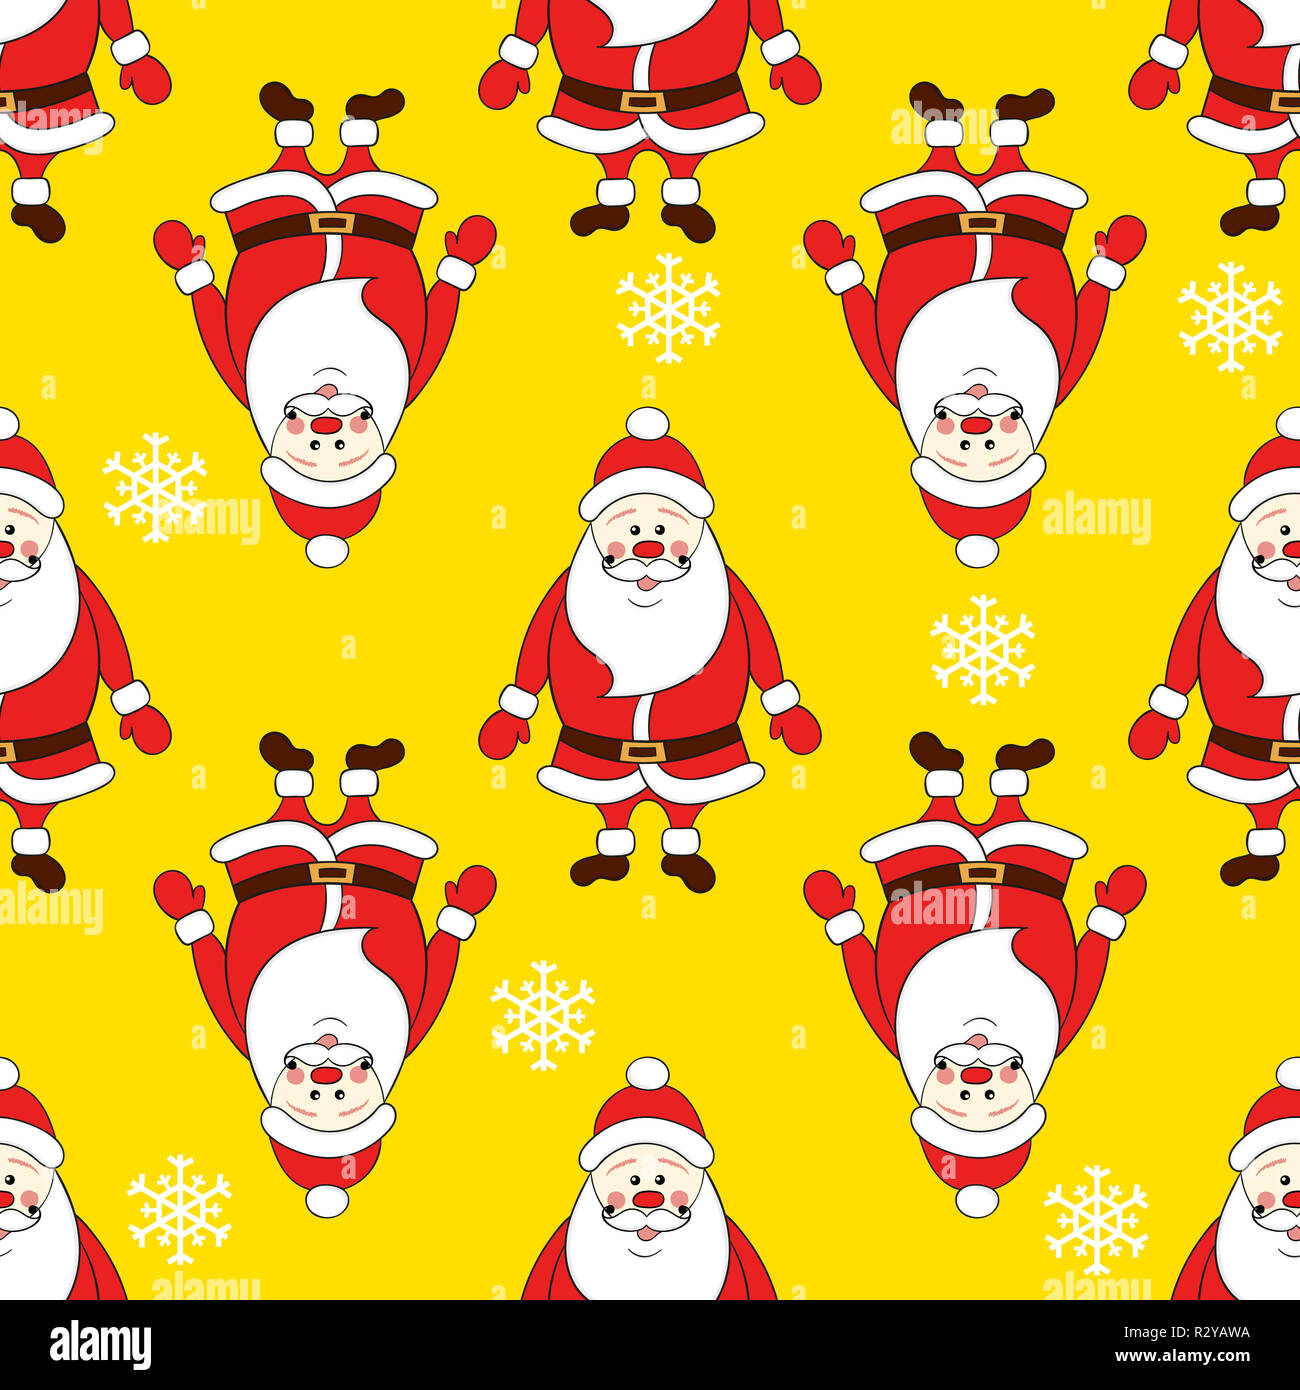 Christmas Seamless Pattern With Cartoon Santa Claus Against